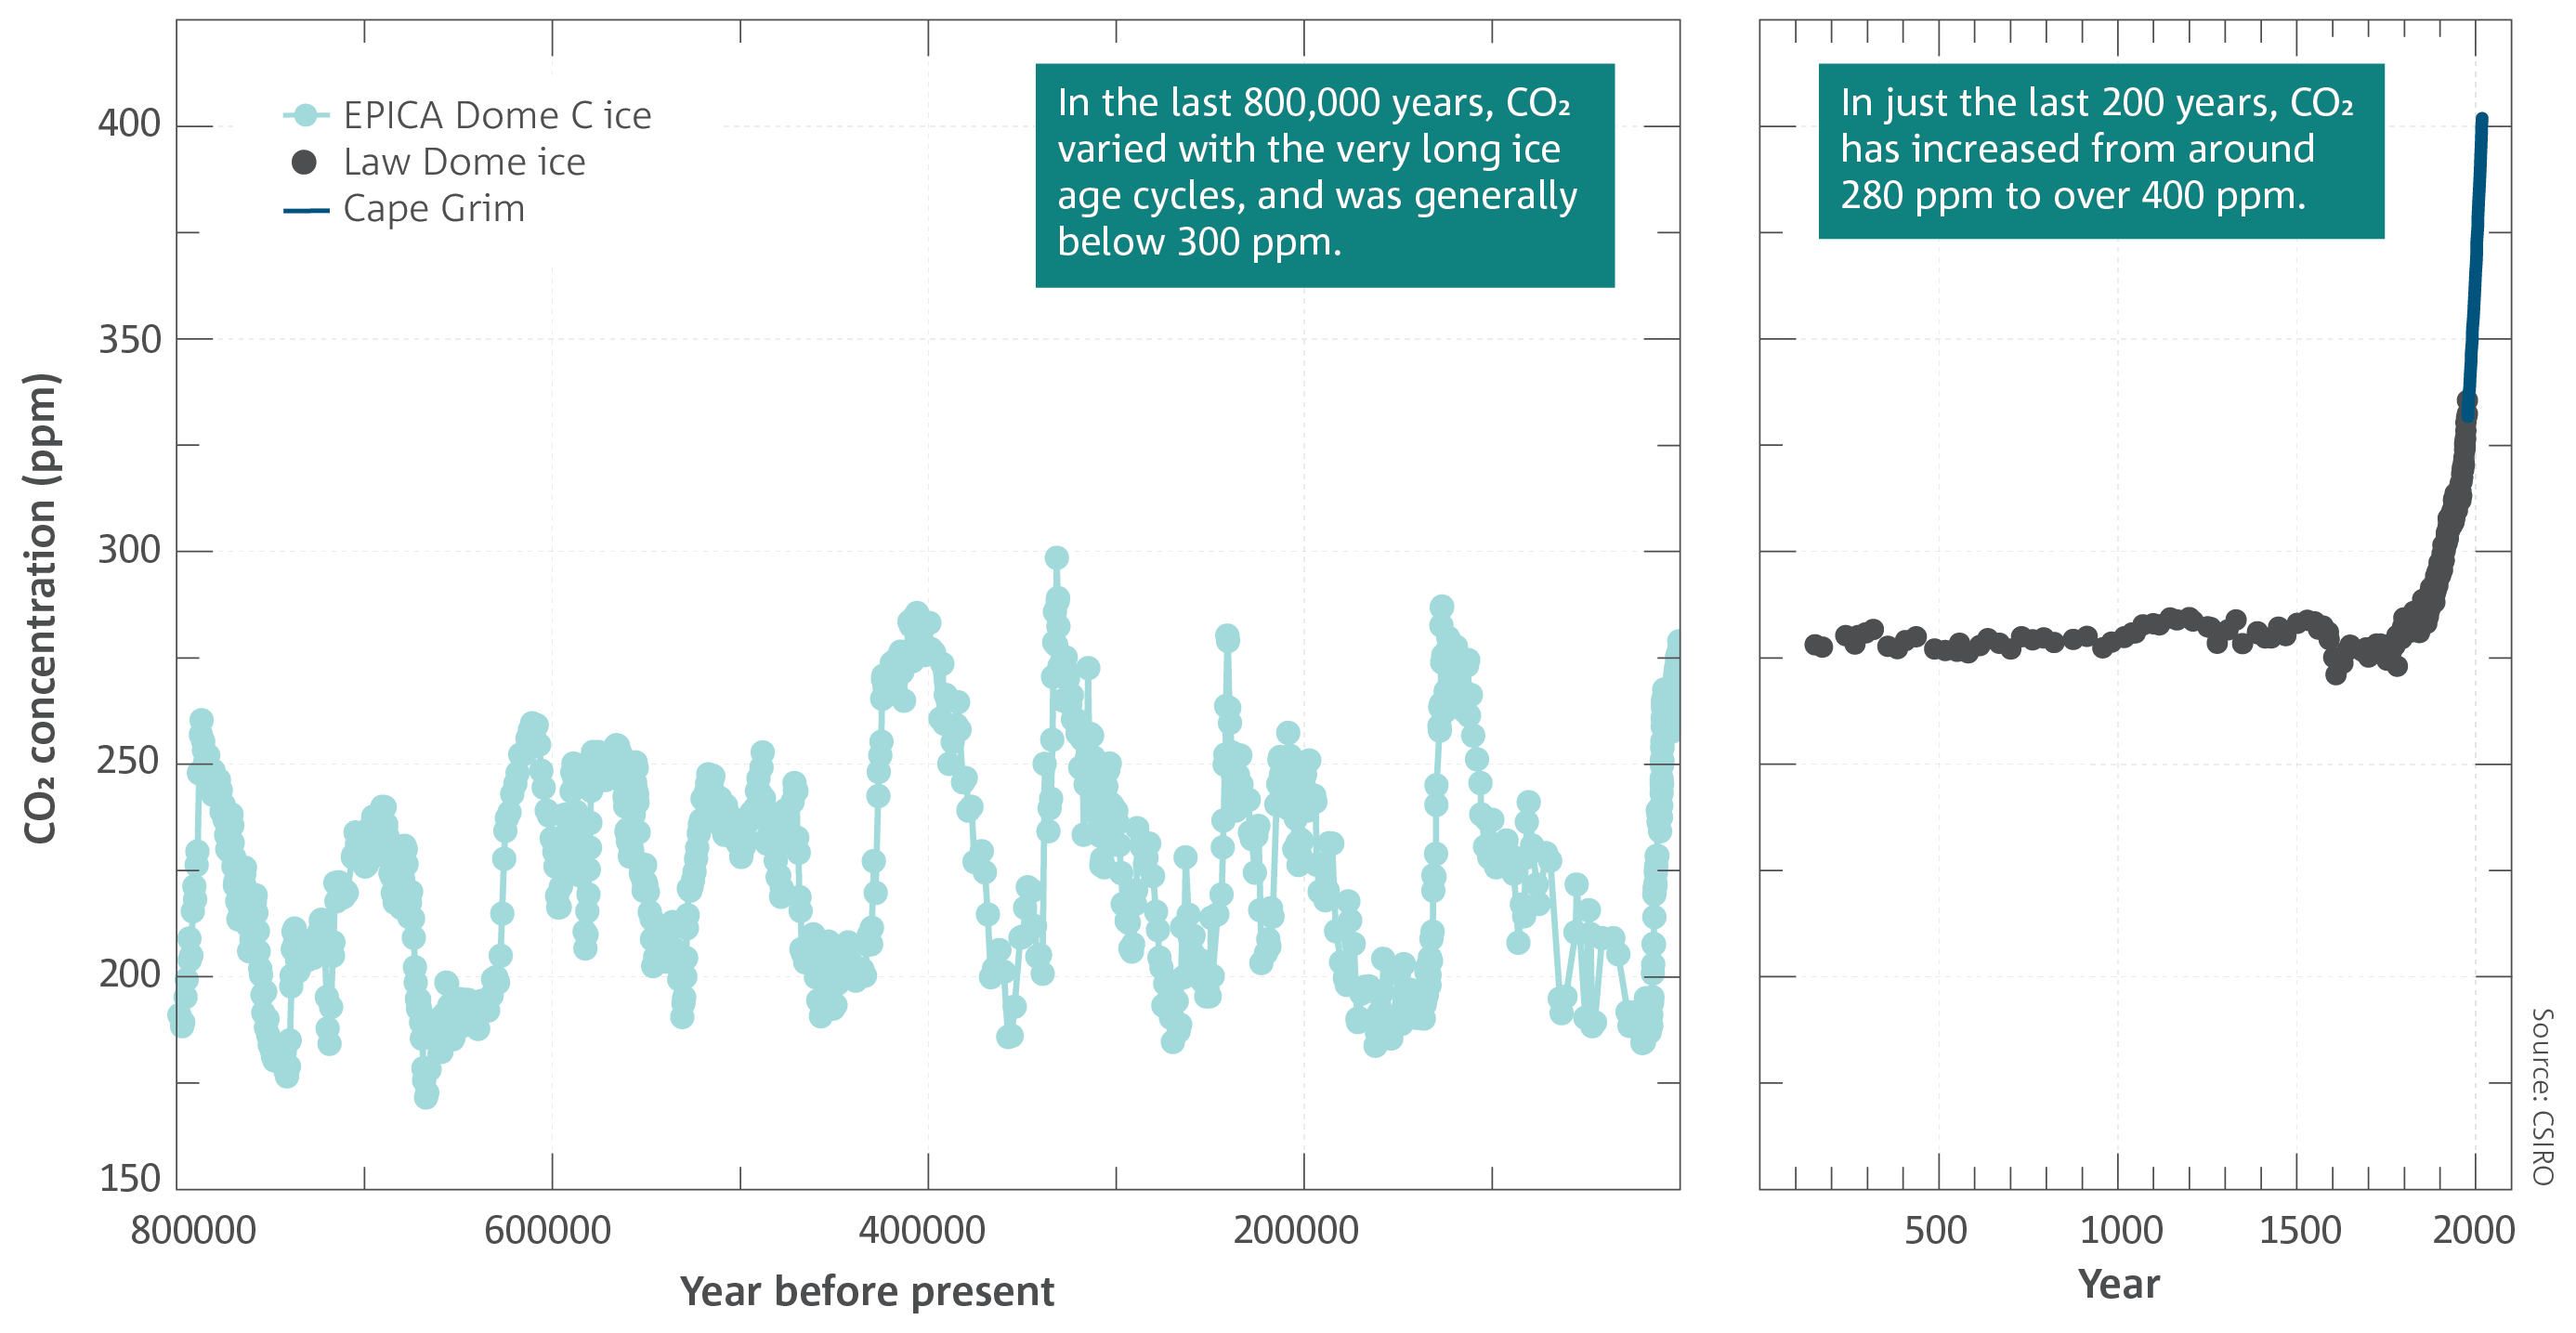 Graphs showing atmospheric CO2 concentrations from 800,000 years ago to around year 0, and for the last 2017 years, from measurements of air in Antarctic ice cores and at Cape Grim.